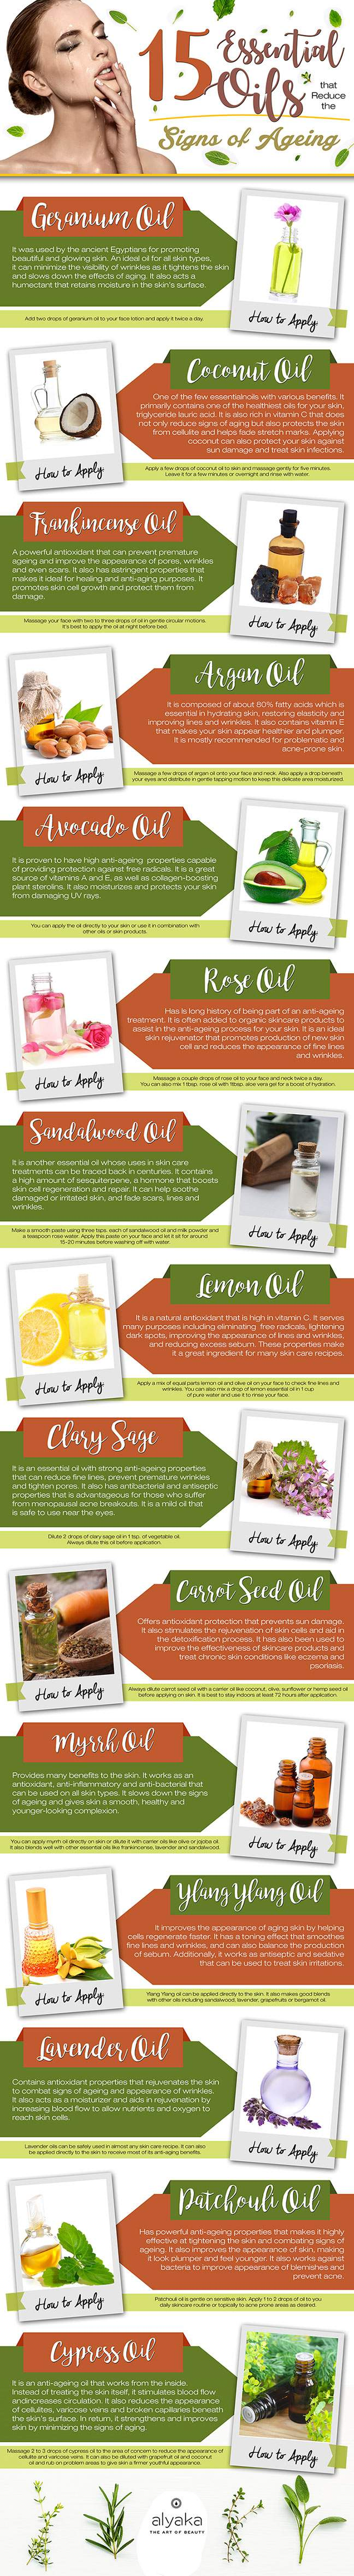 15-Essential-Oils-that-Reduce-the-Signs-of-Ageing